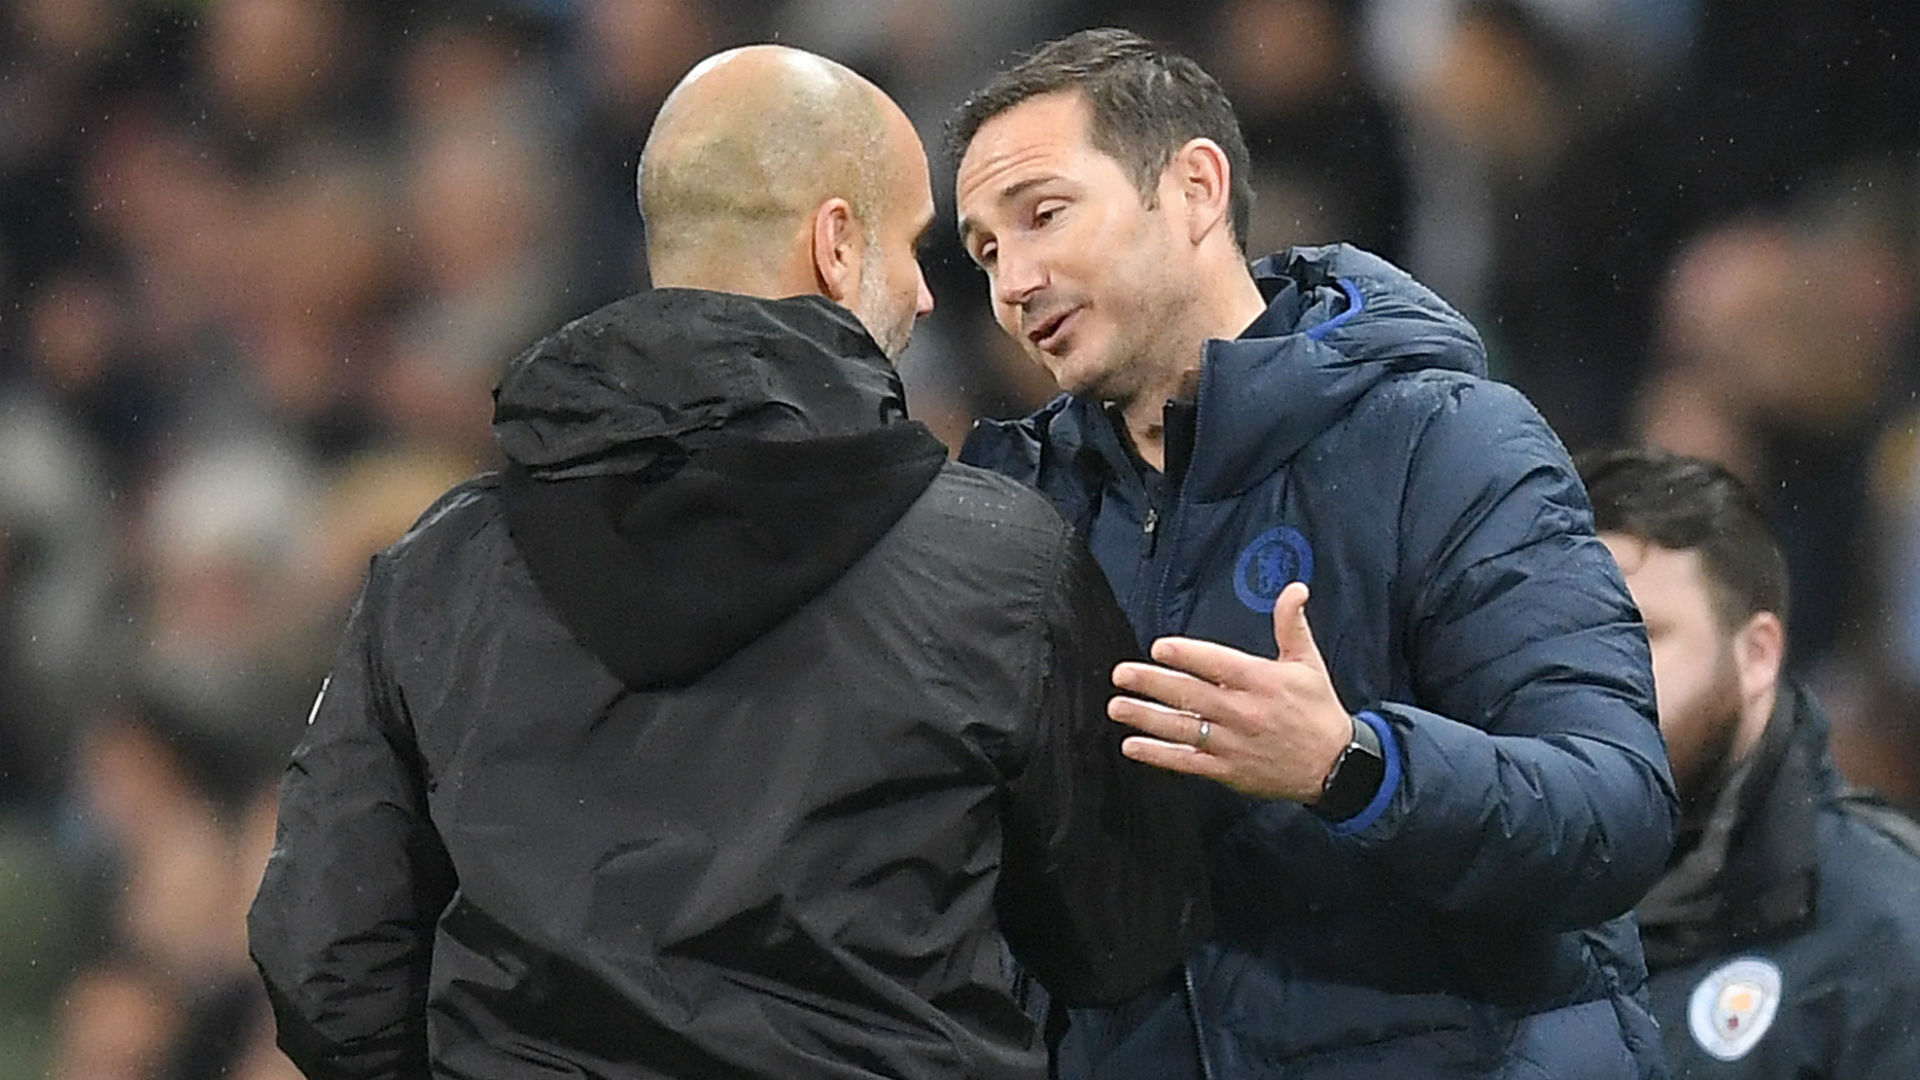 Guardiola discusses Lampard sacking: Projects and ideas don't exist - you have to win!